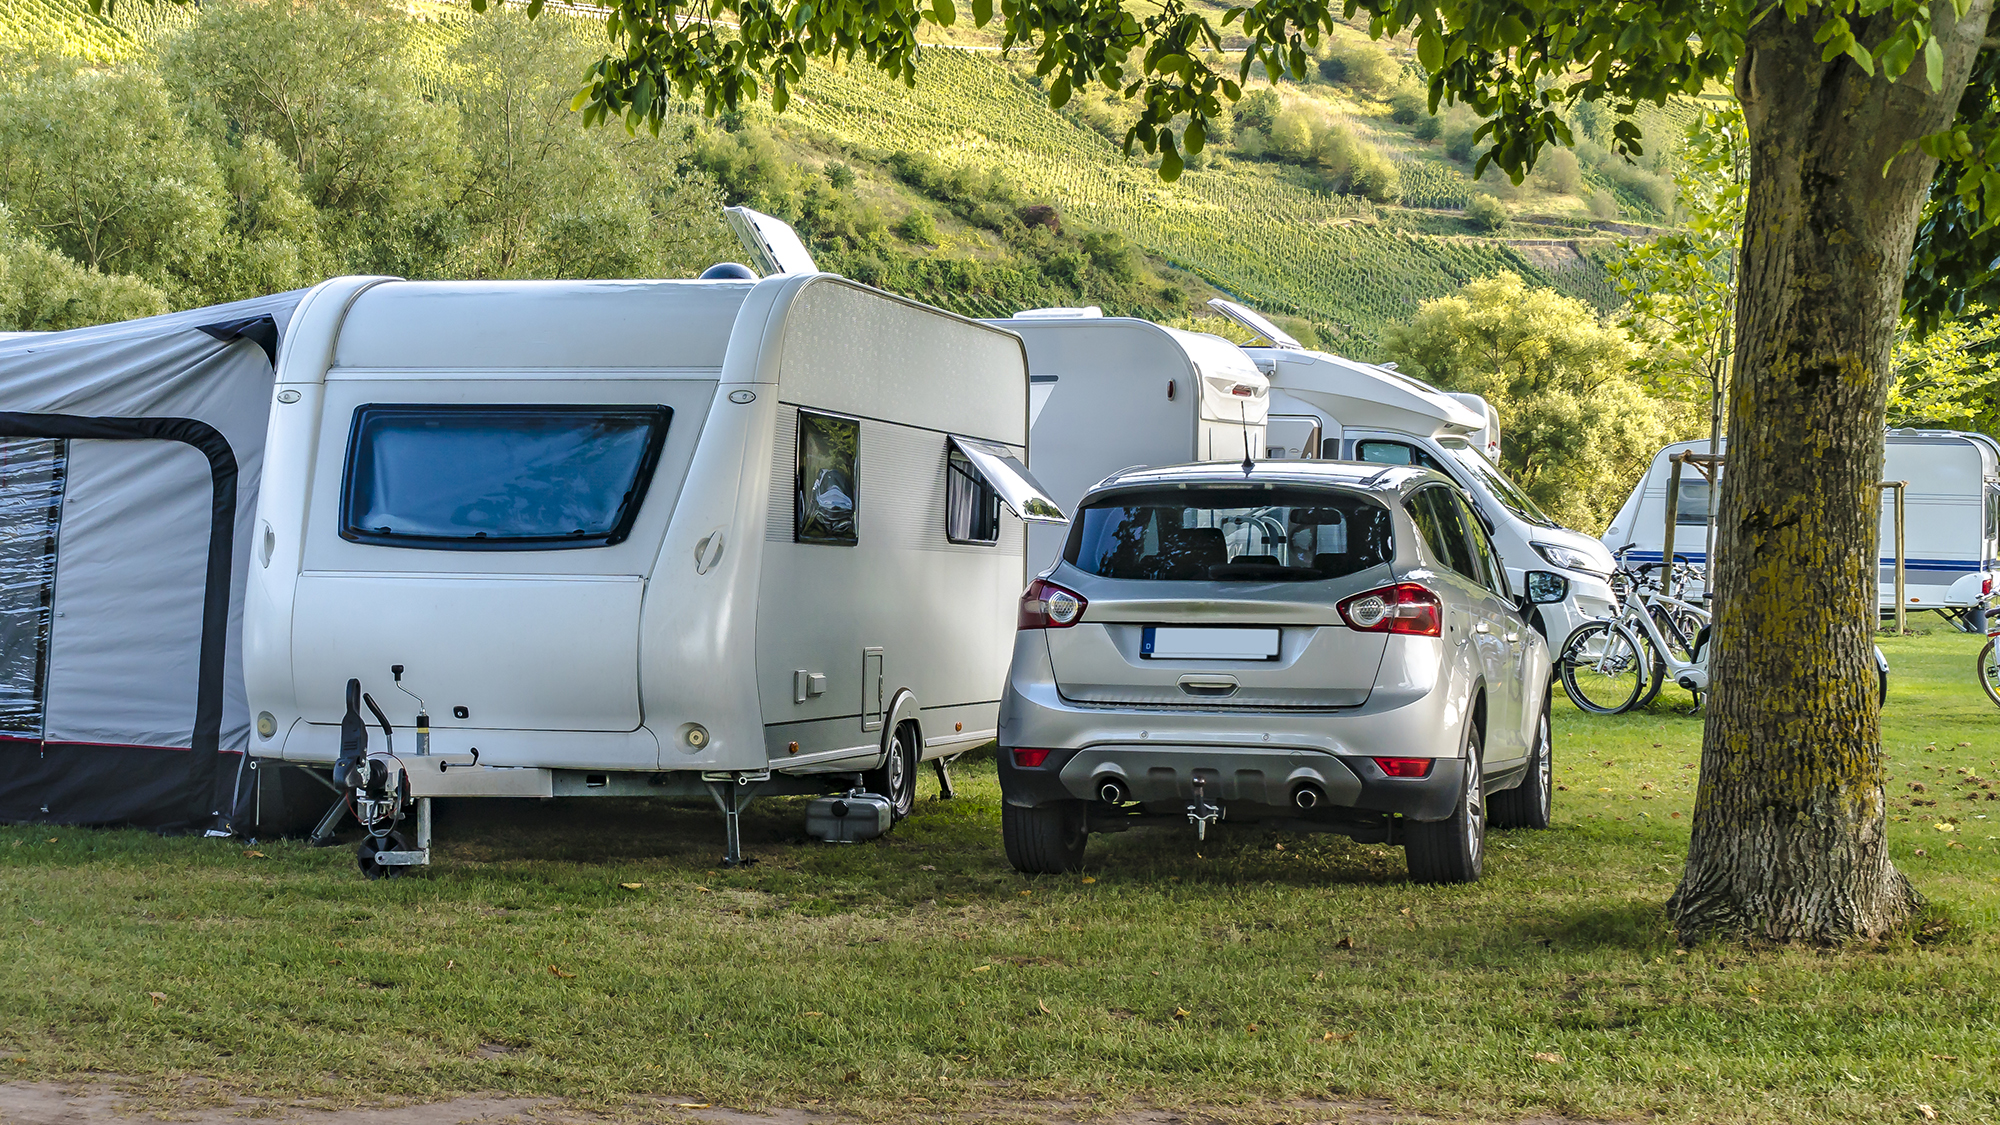 Caravan with awning attached next to a car in the French countryside